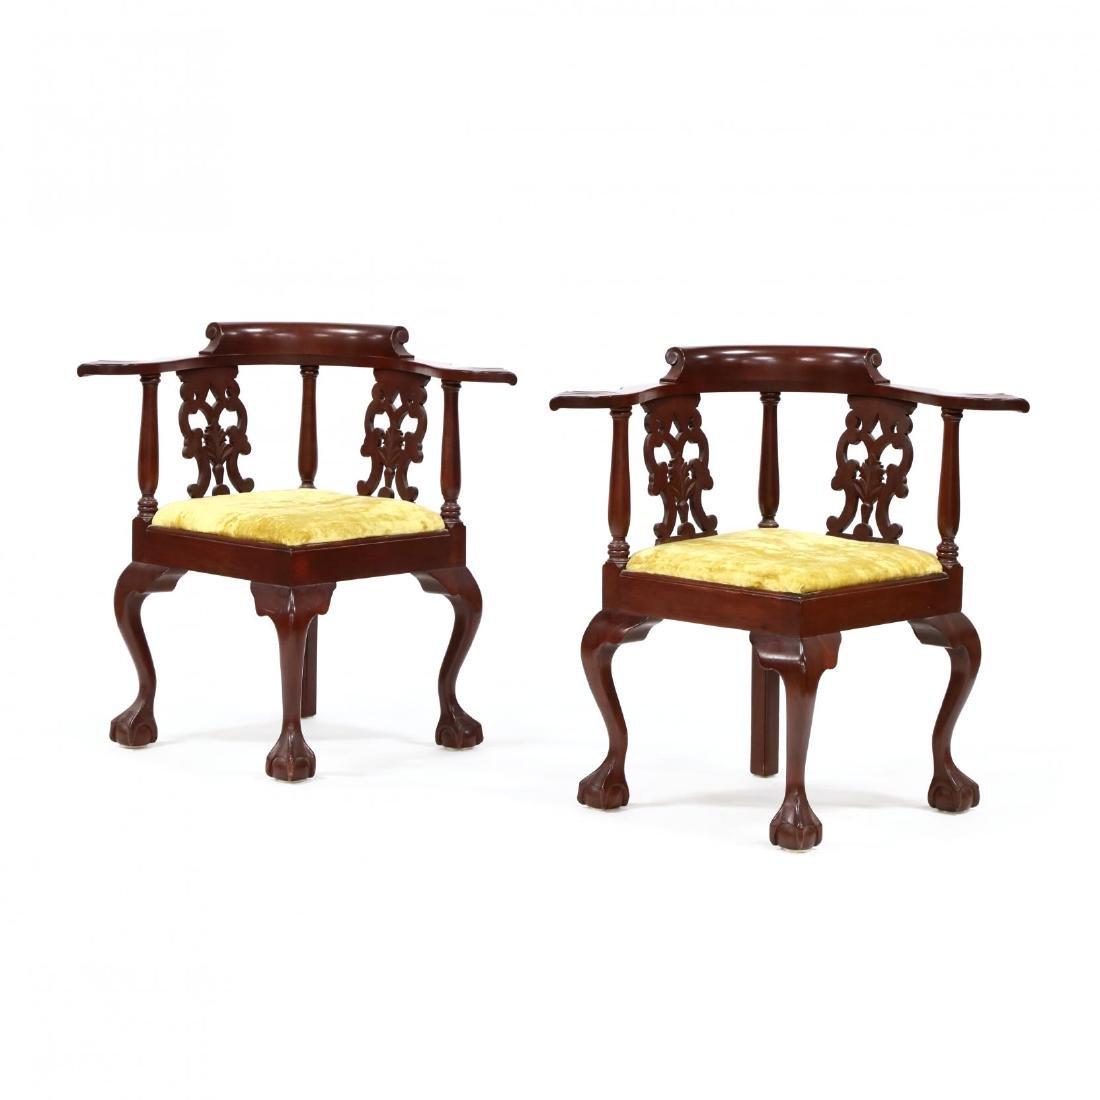 Pair of Chippendale Style Carved Mahogany Corner Chairs